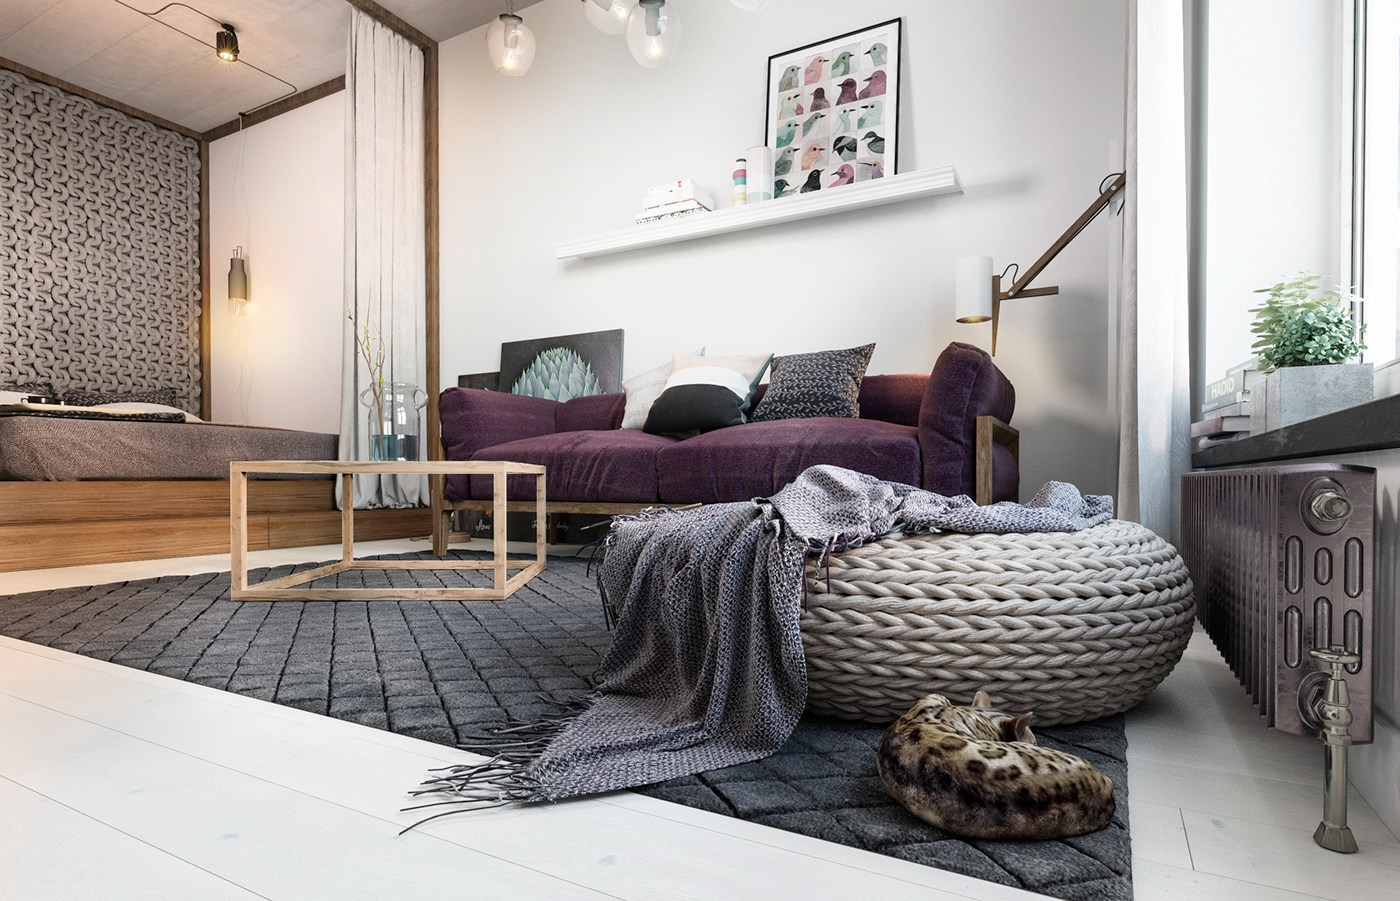 Small Apartment Design With Scandinavian Style That Looks ... on Apartment Decorating Styles  id=59959